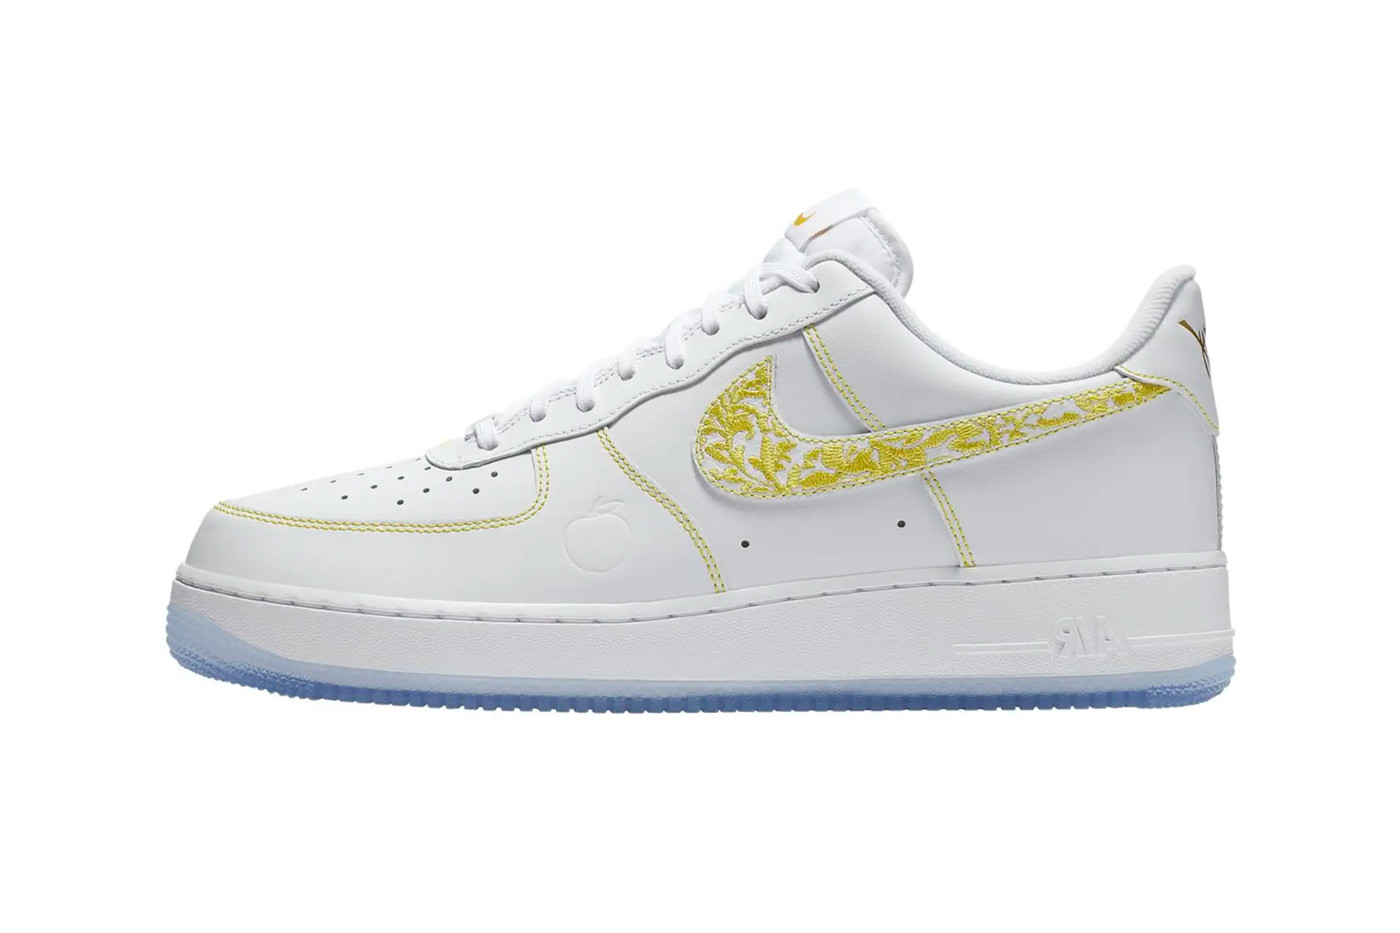 e6d34e1109 Air Force 1 Archives - Page 2 of 2 - Trill